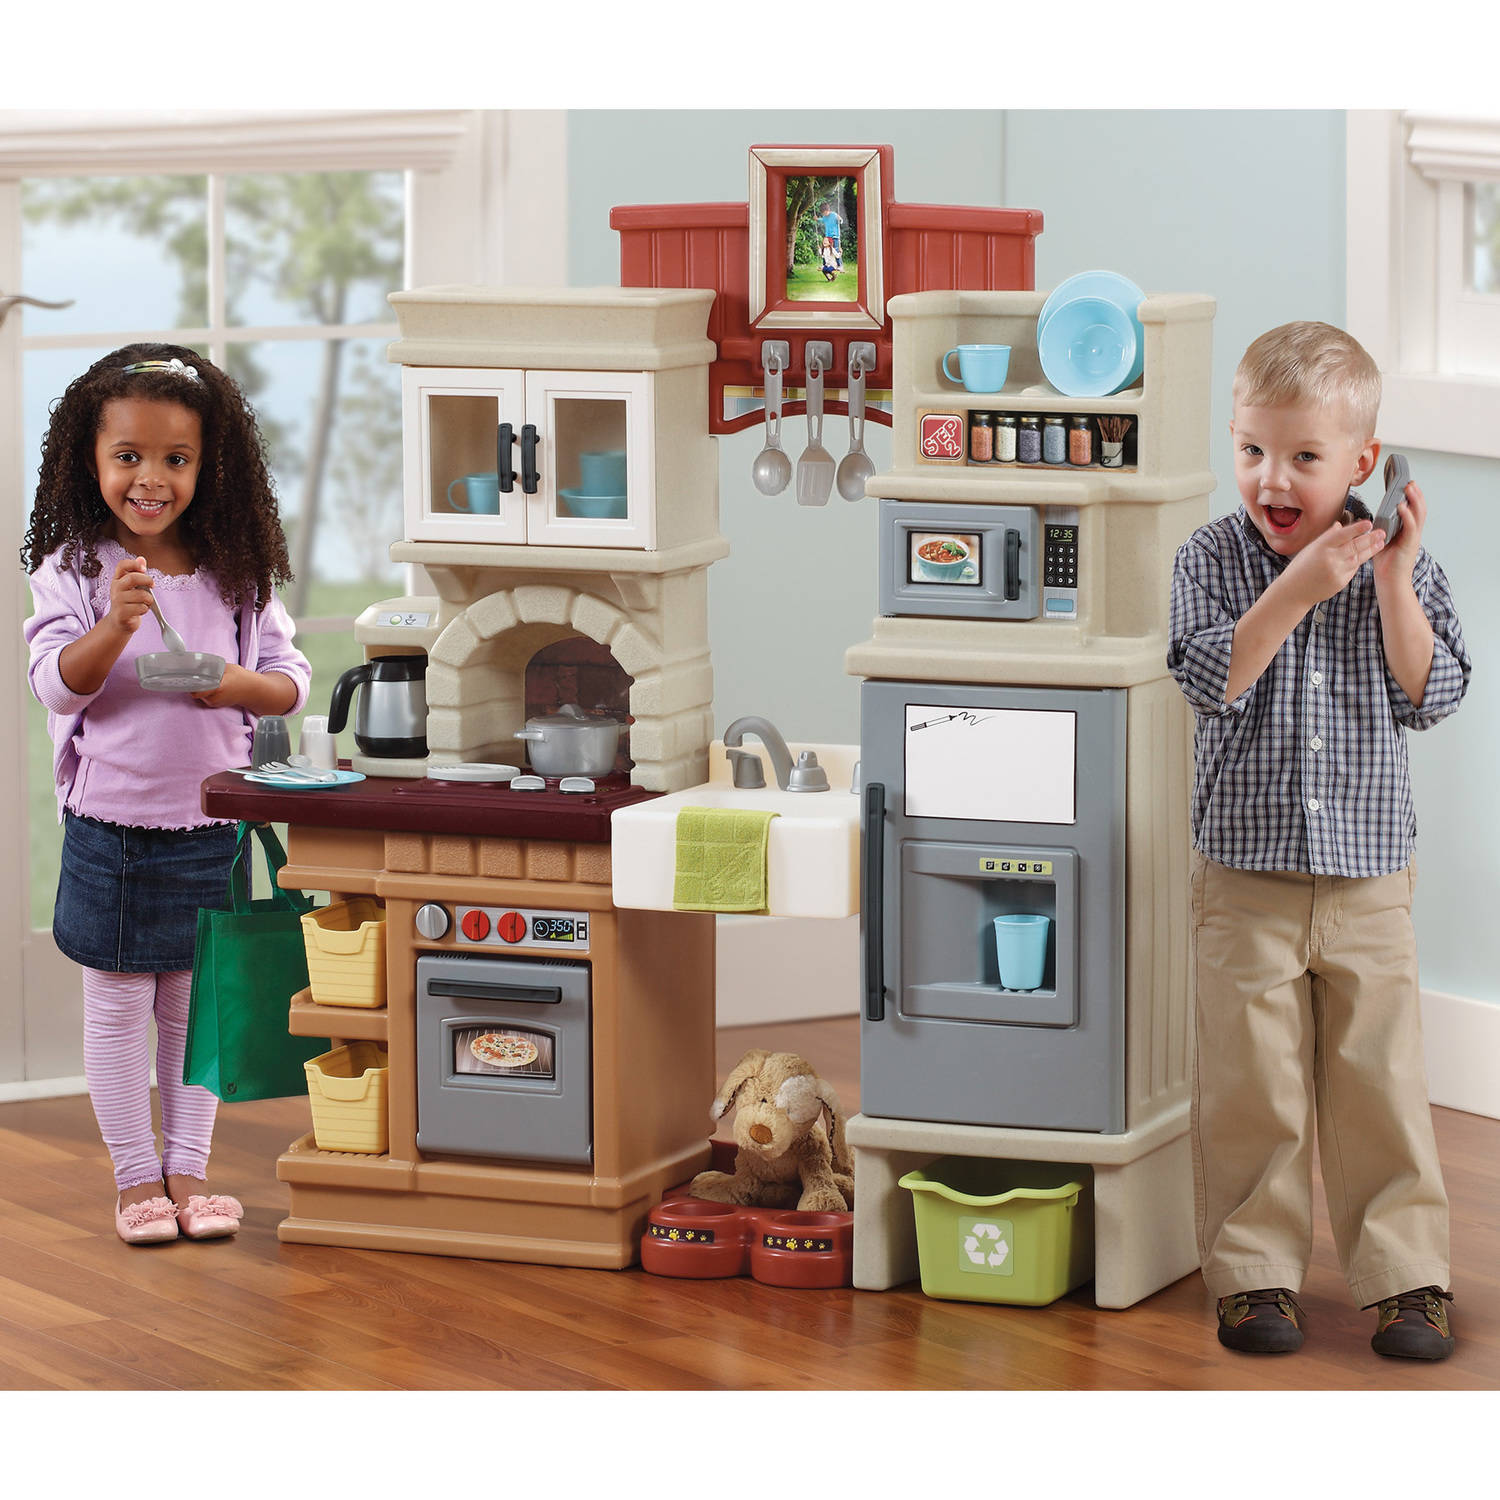 Play Kitchen Step2 Heart Of The Home Kitchen Includes 41 Piece Accessory Cook